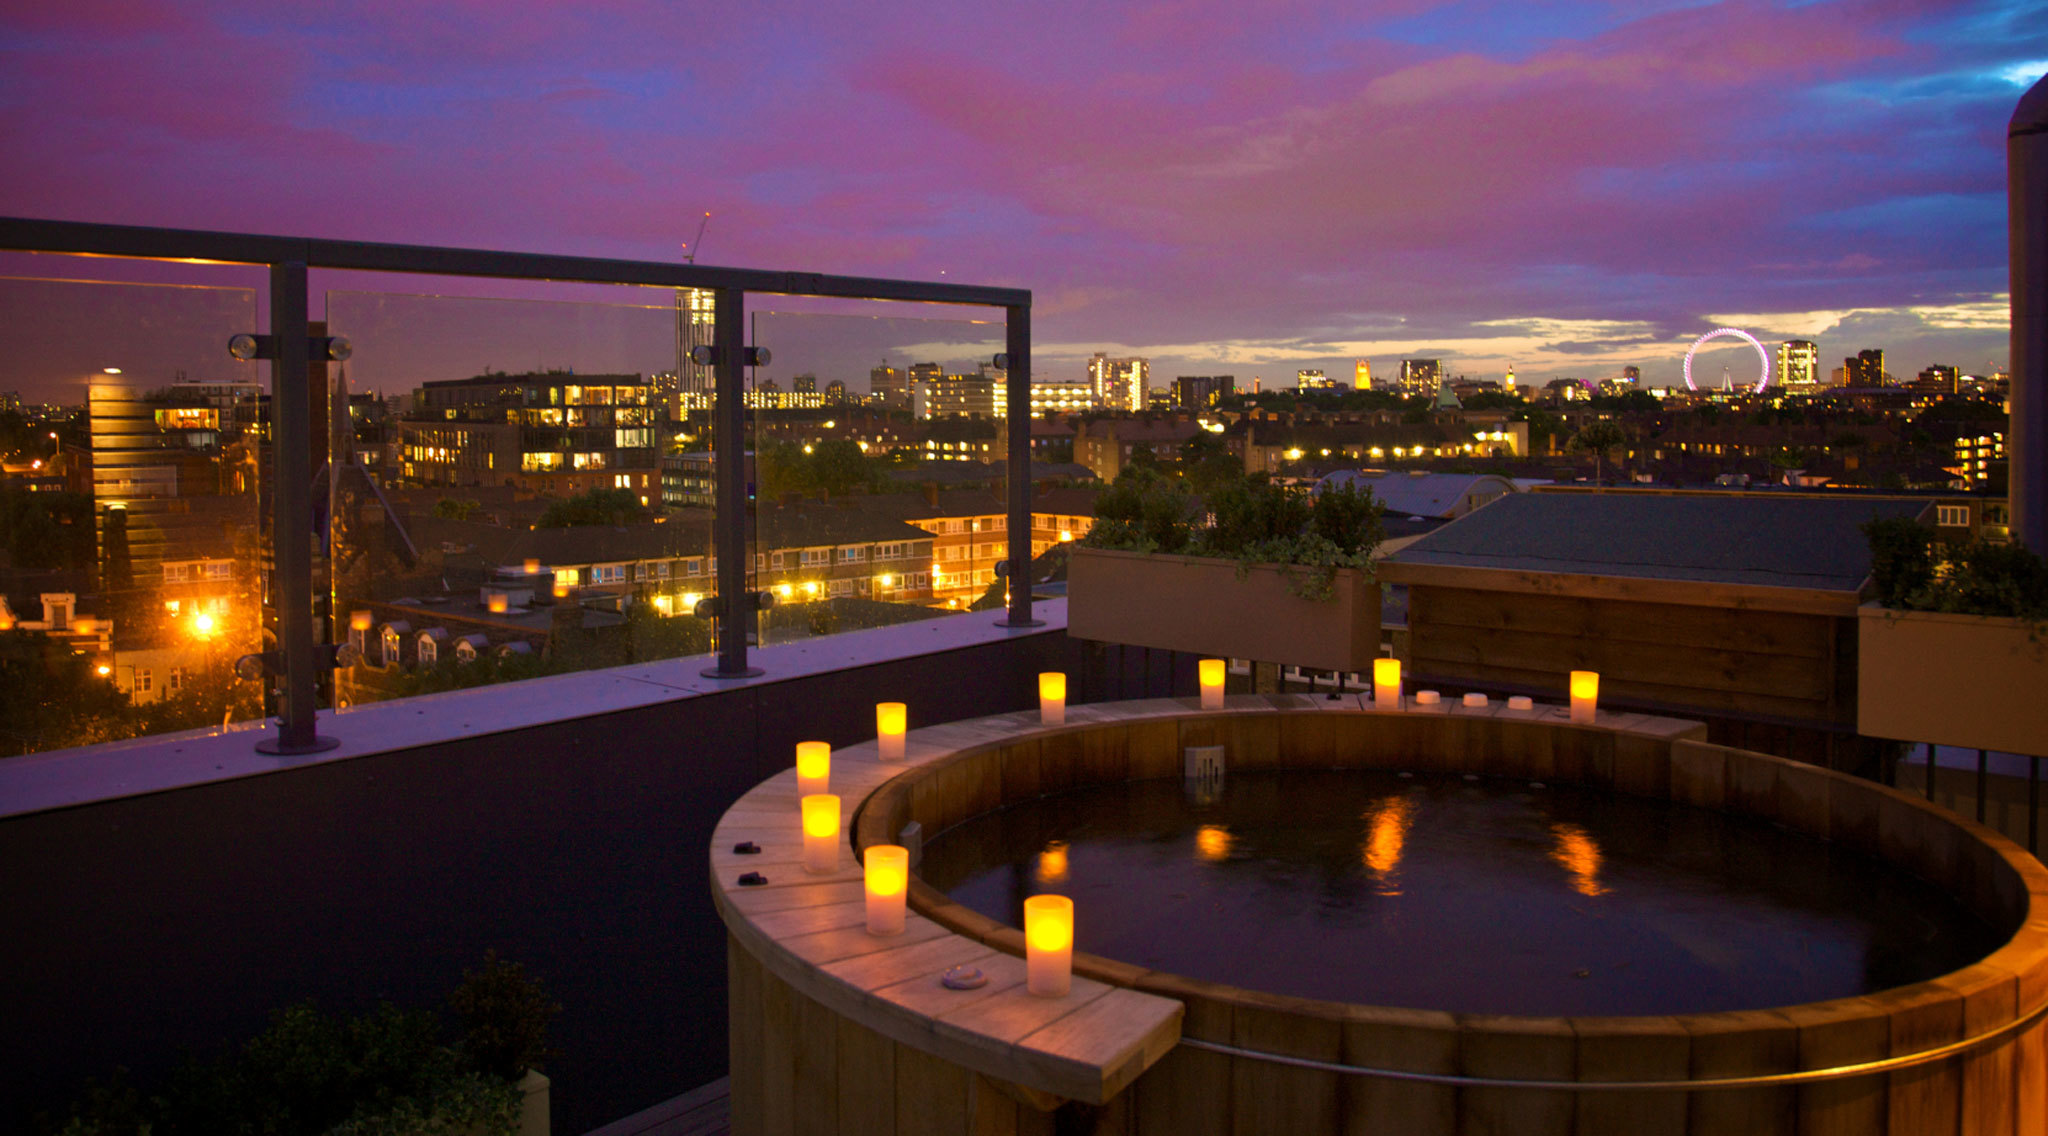 Jacuzzi Pool Hotel London Hotels With Jacuzzis And Hot Tubs Time Out London